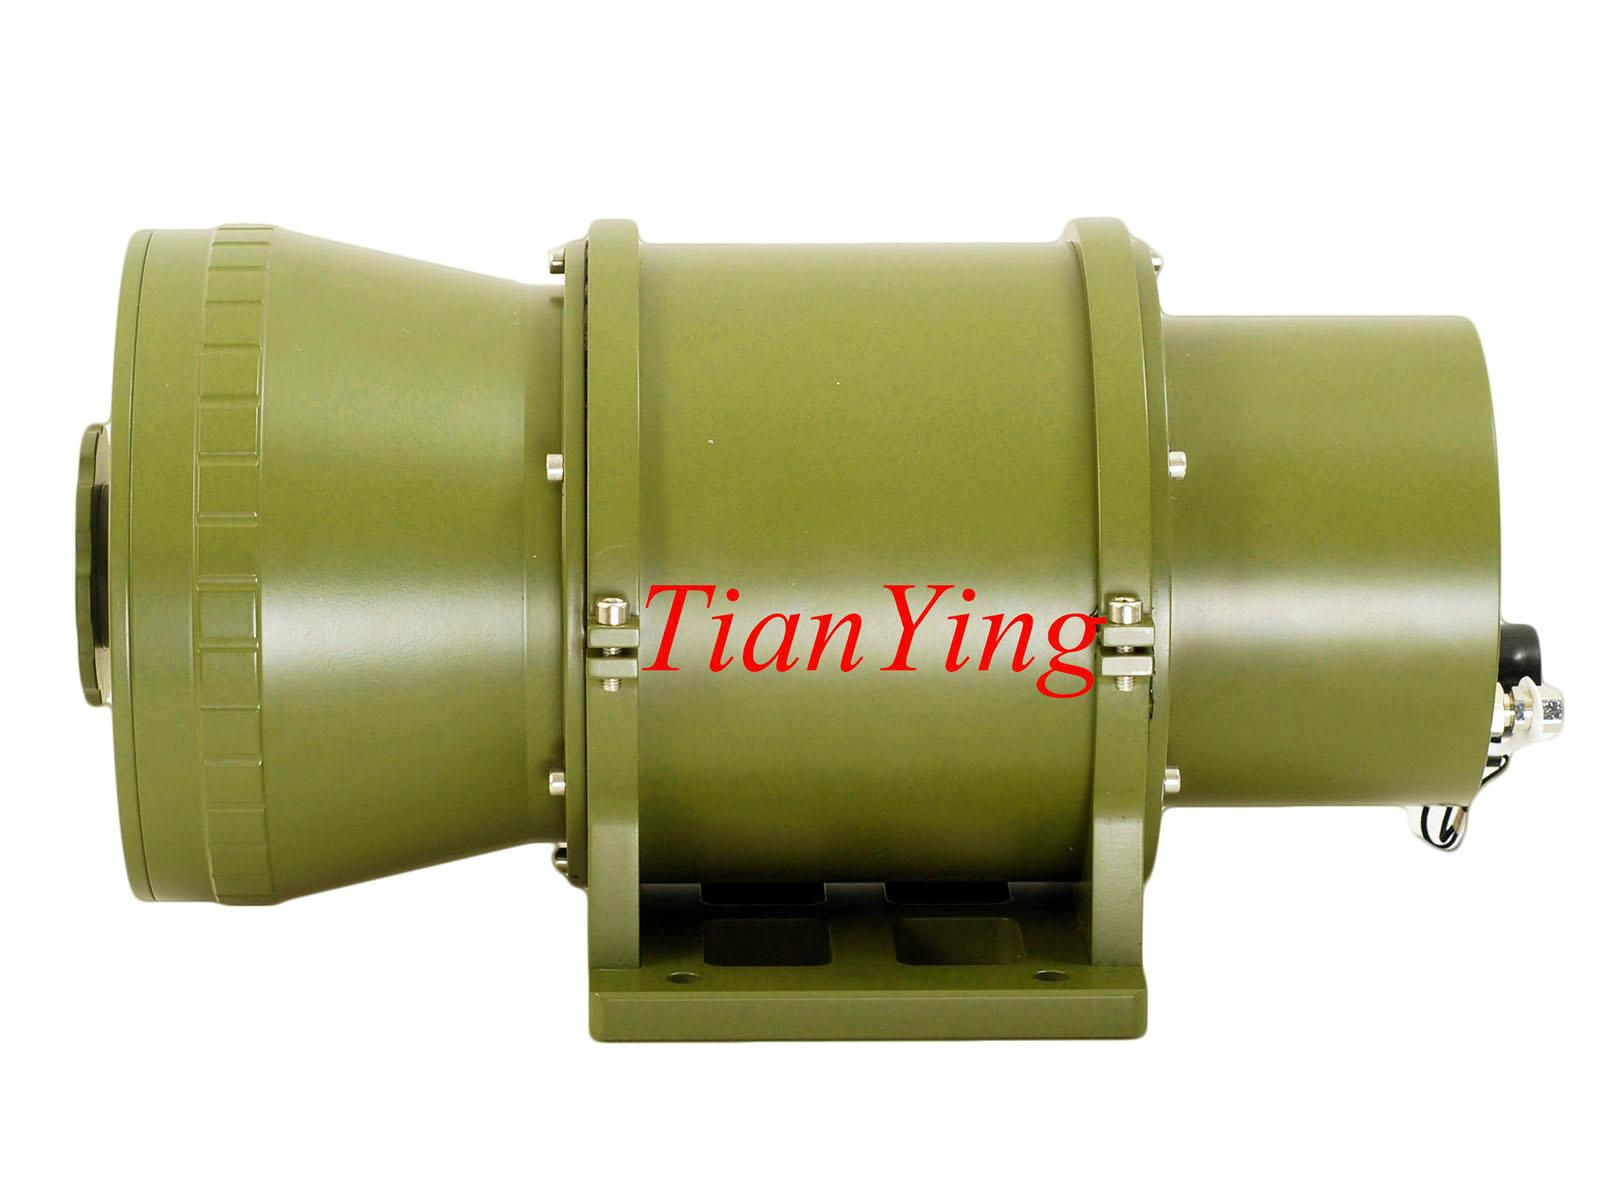 640x512 25-250mm continuous zoom 2.5km/4km/7km Surveillance Thermal Camera/ Infrared Camera/Thermal Imaging